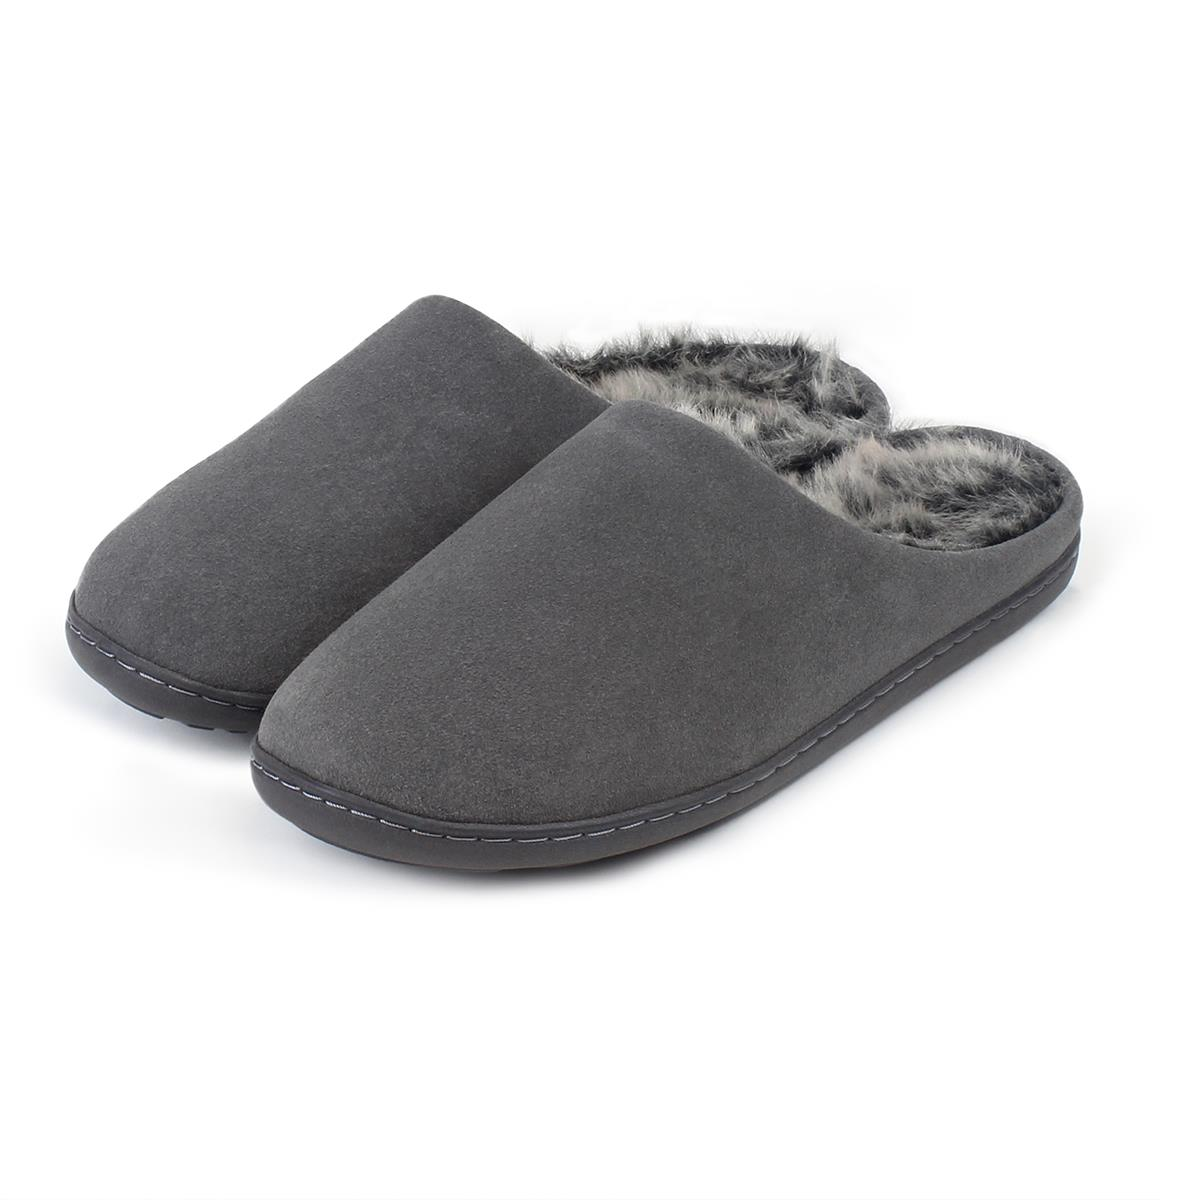 4b03a1fe45c6 Isotoner Mens Heritage Suede Mules Boxed Grey